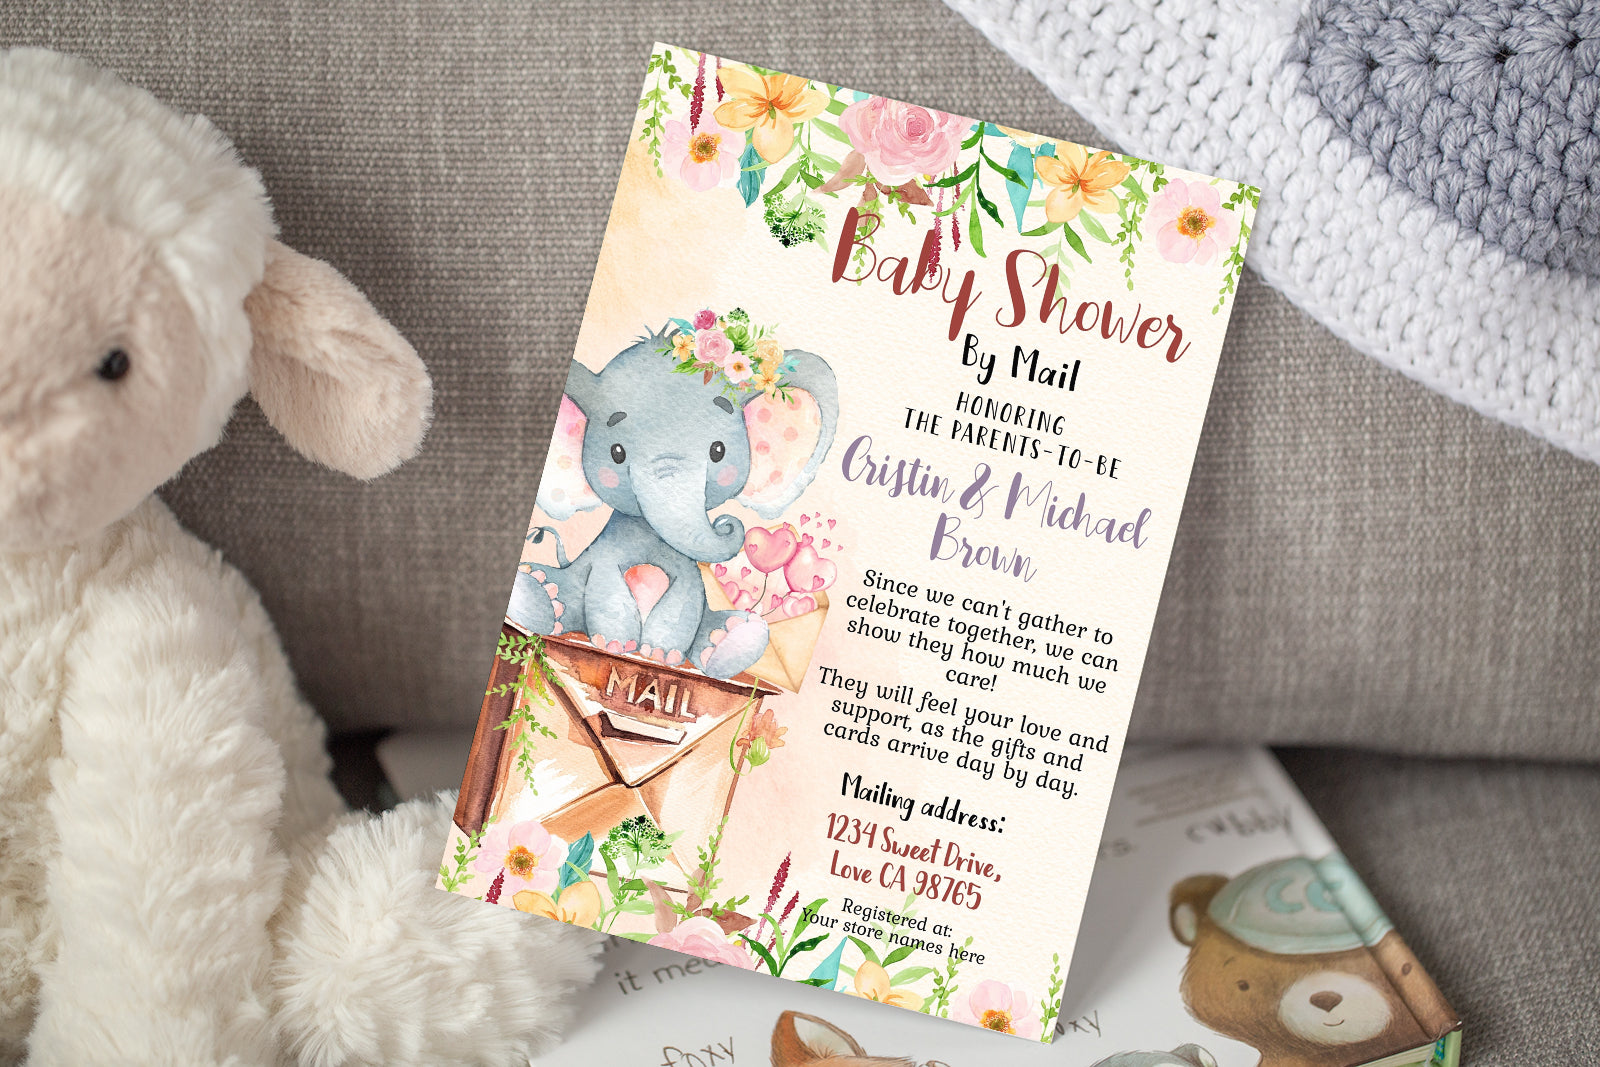 Girl Floral Elephant Editable Shower by Mail Invitation | Girl Safari Theme 63A